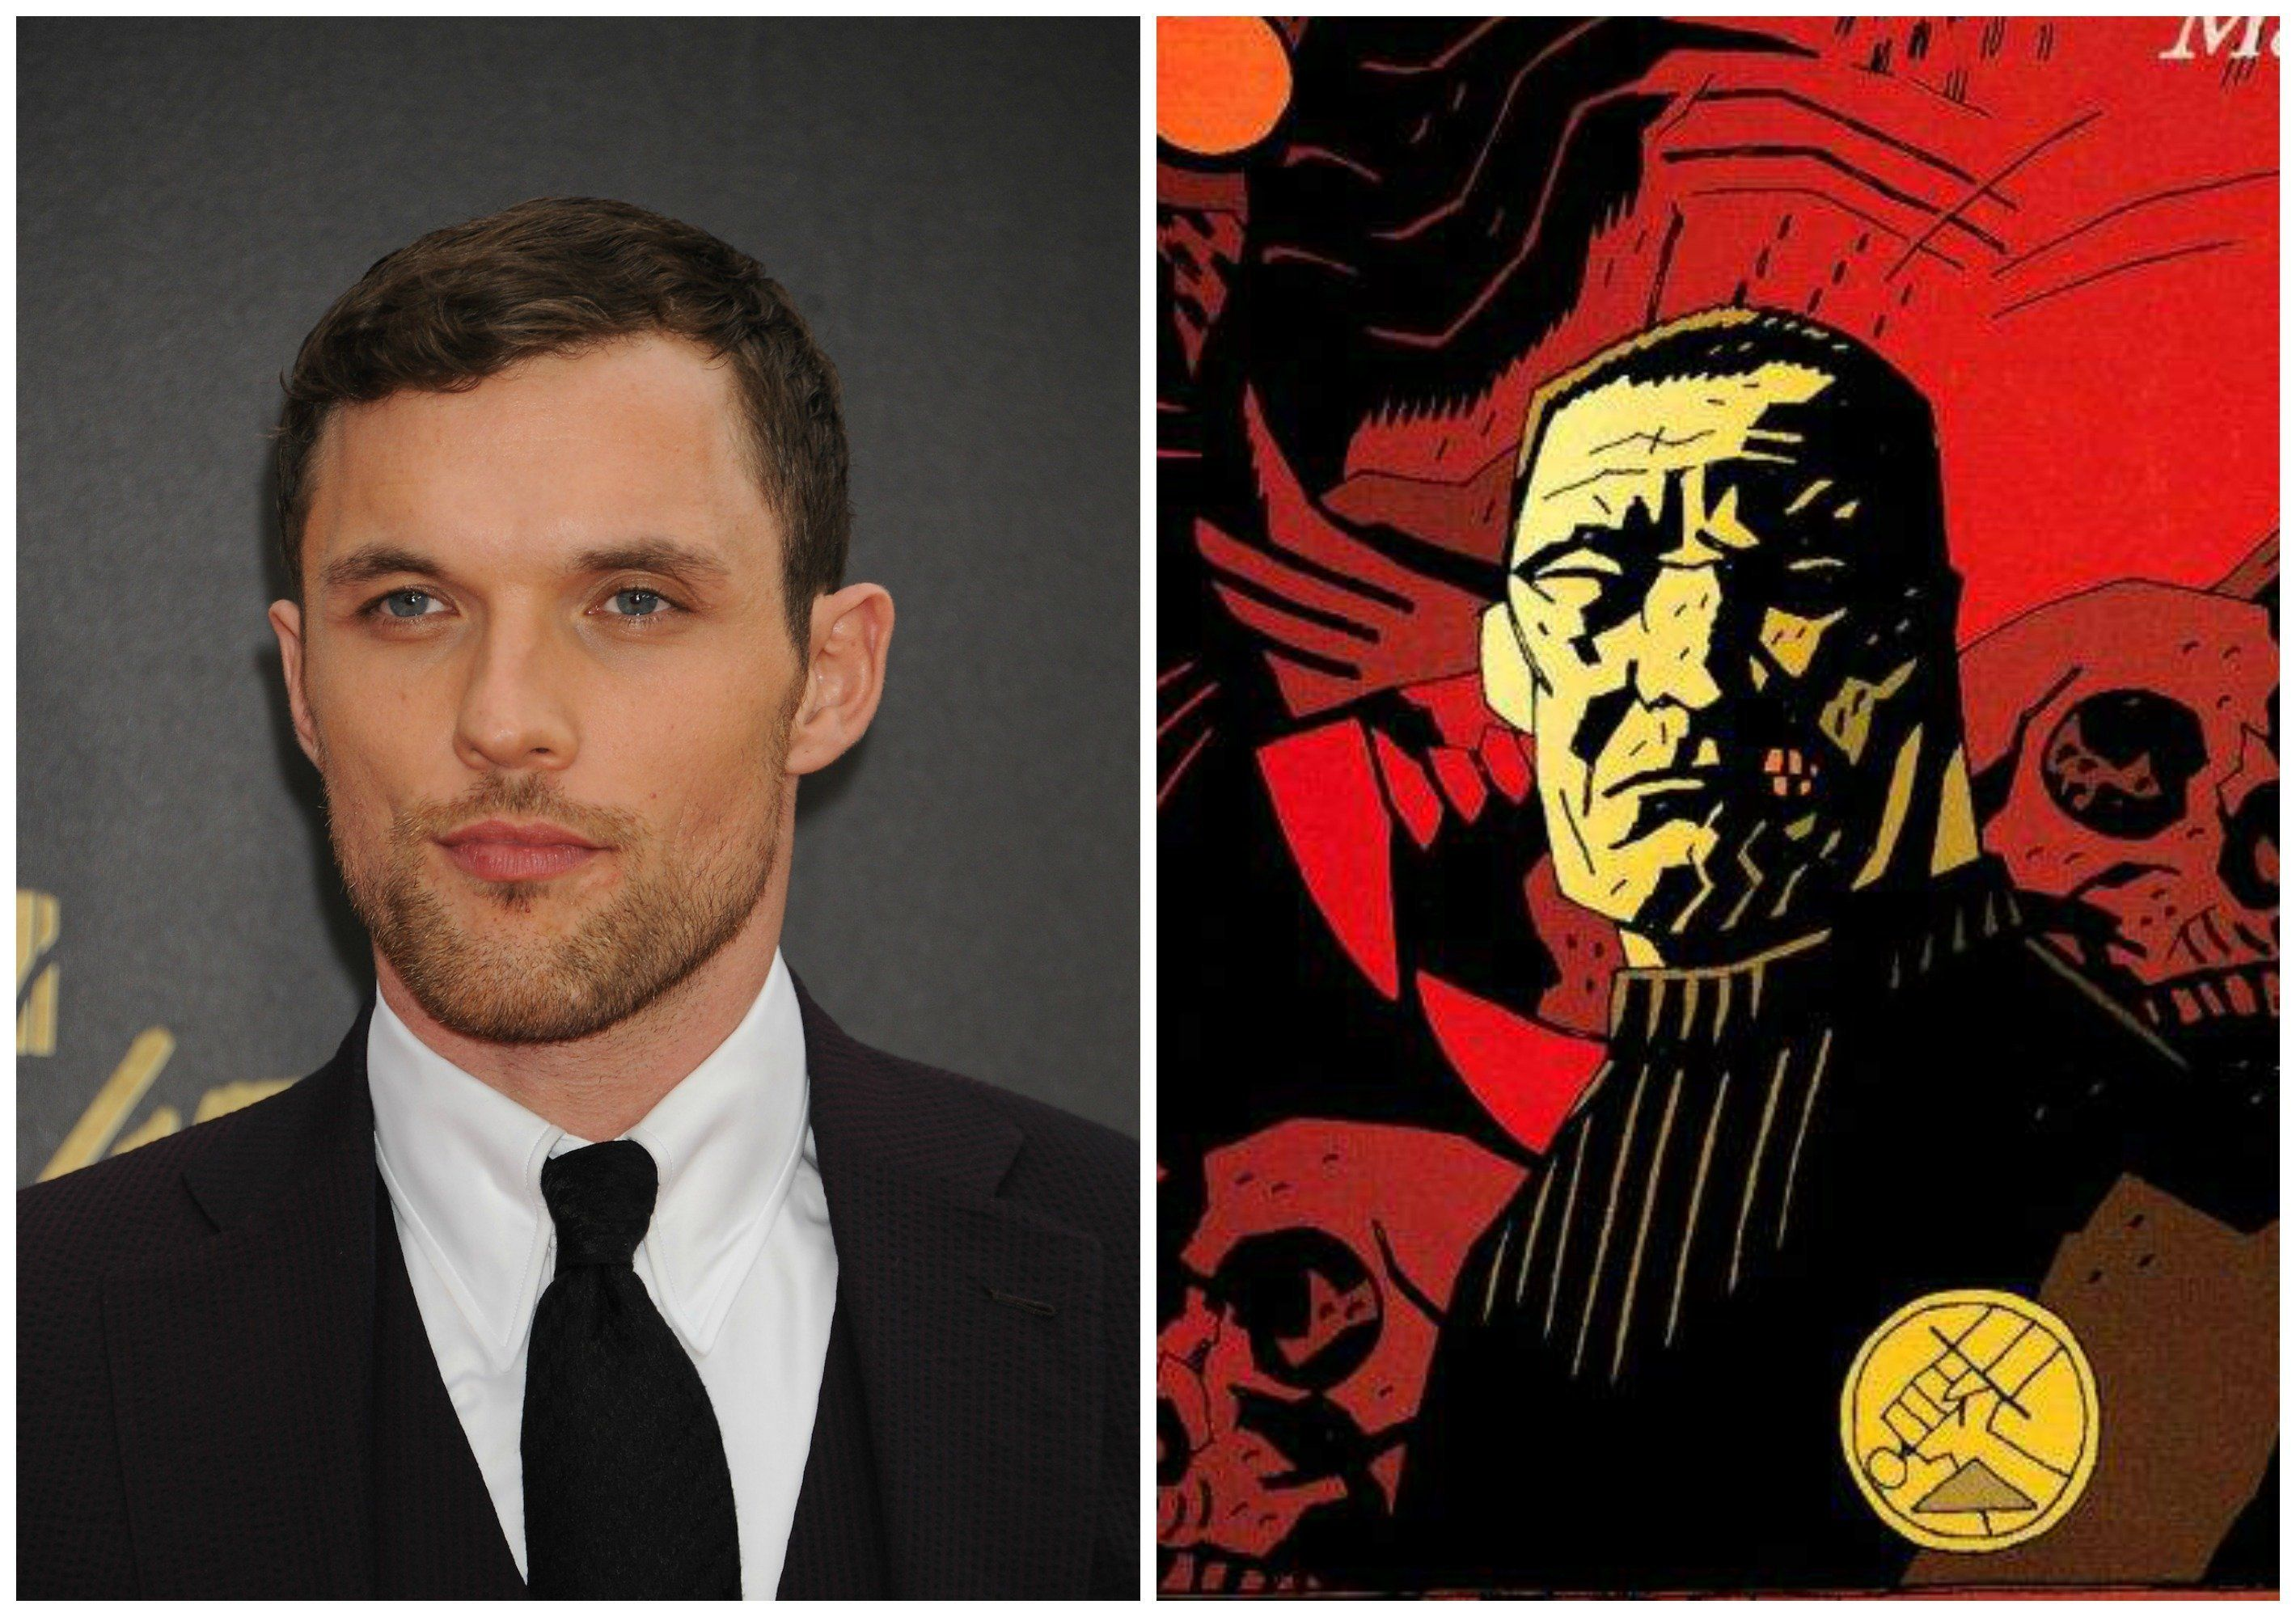 """Ed Skrein, left, has been cast as Major Ben Daimio in """"Hellboy: Rise of the Blood Queen,"""" shown at right on the cover of a """"H"""